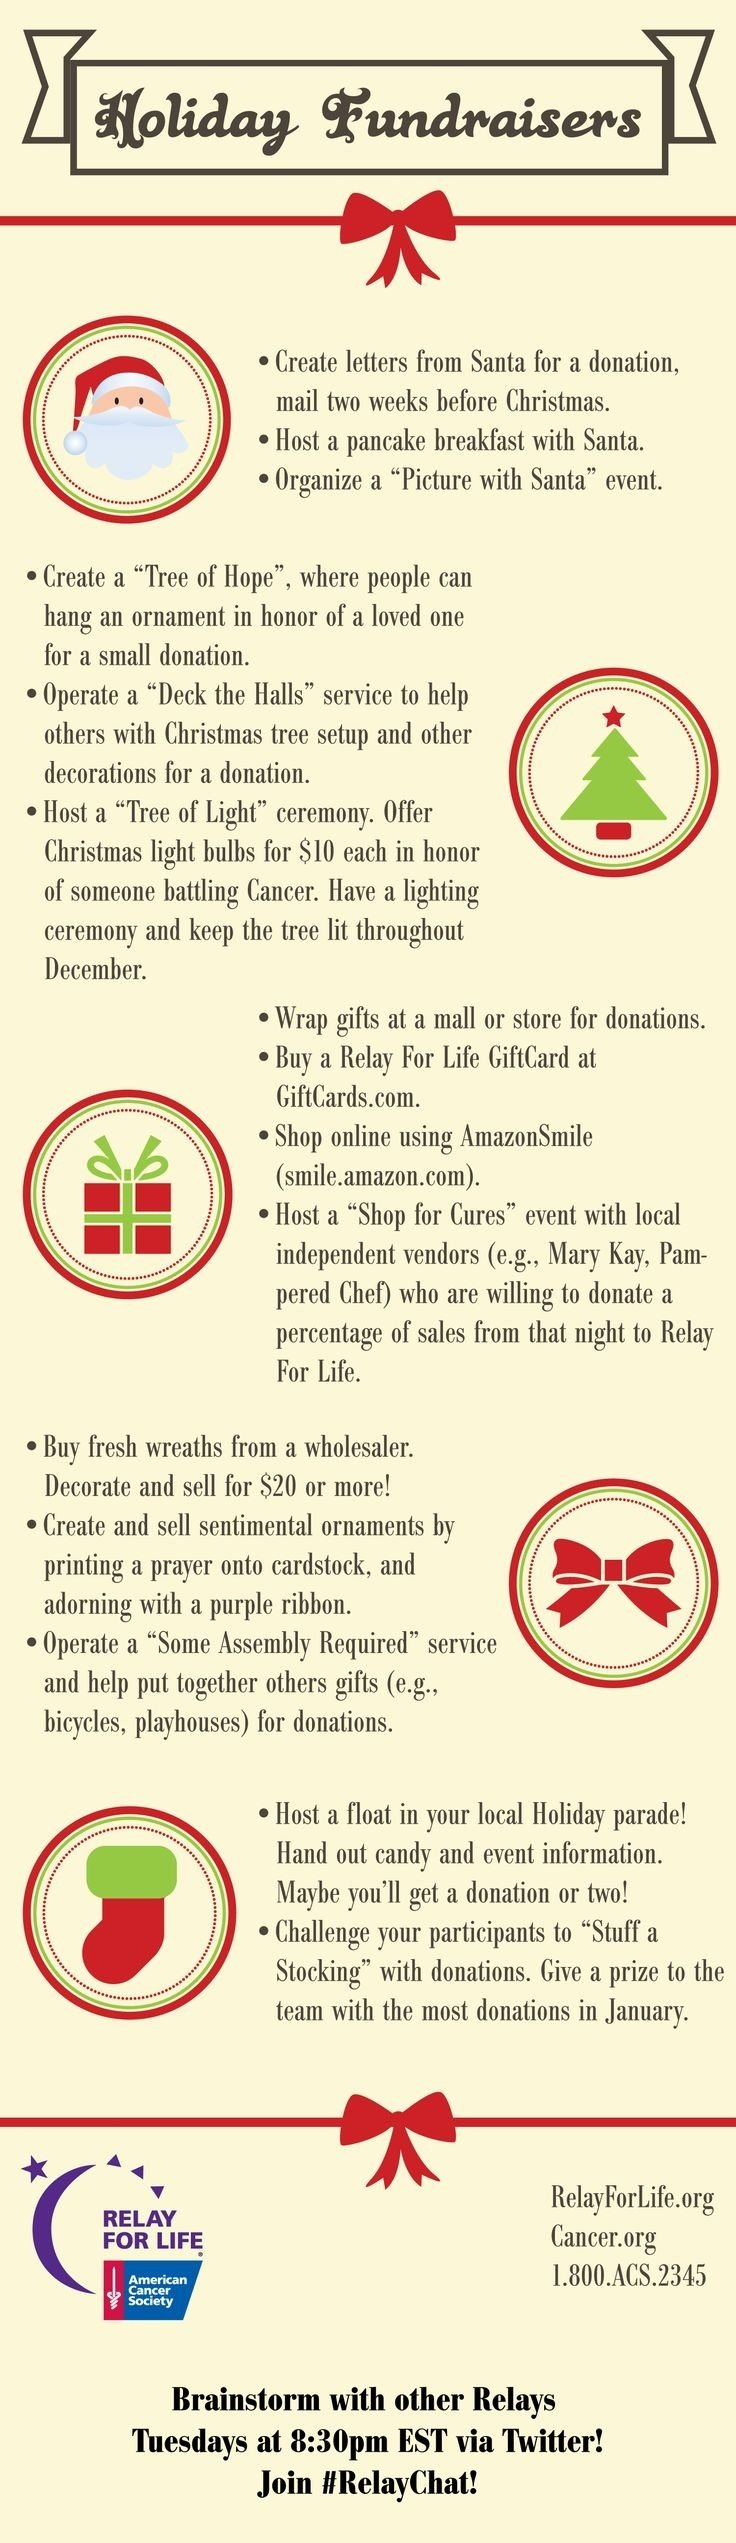 10 Spectacular Fundraising Ideas For High Schools 73 best student fundraising ideas images on pinterest fundraising 4 2020